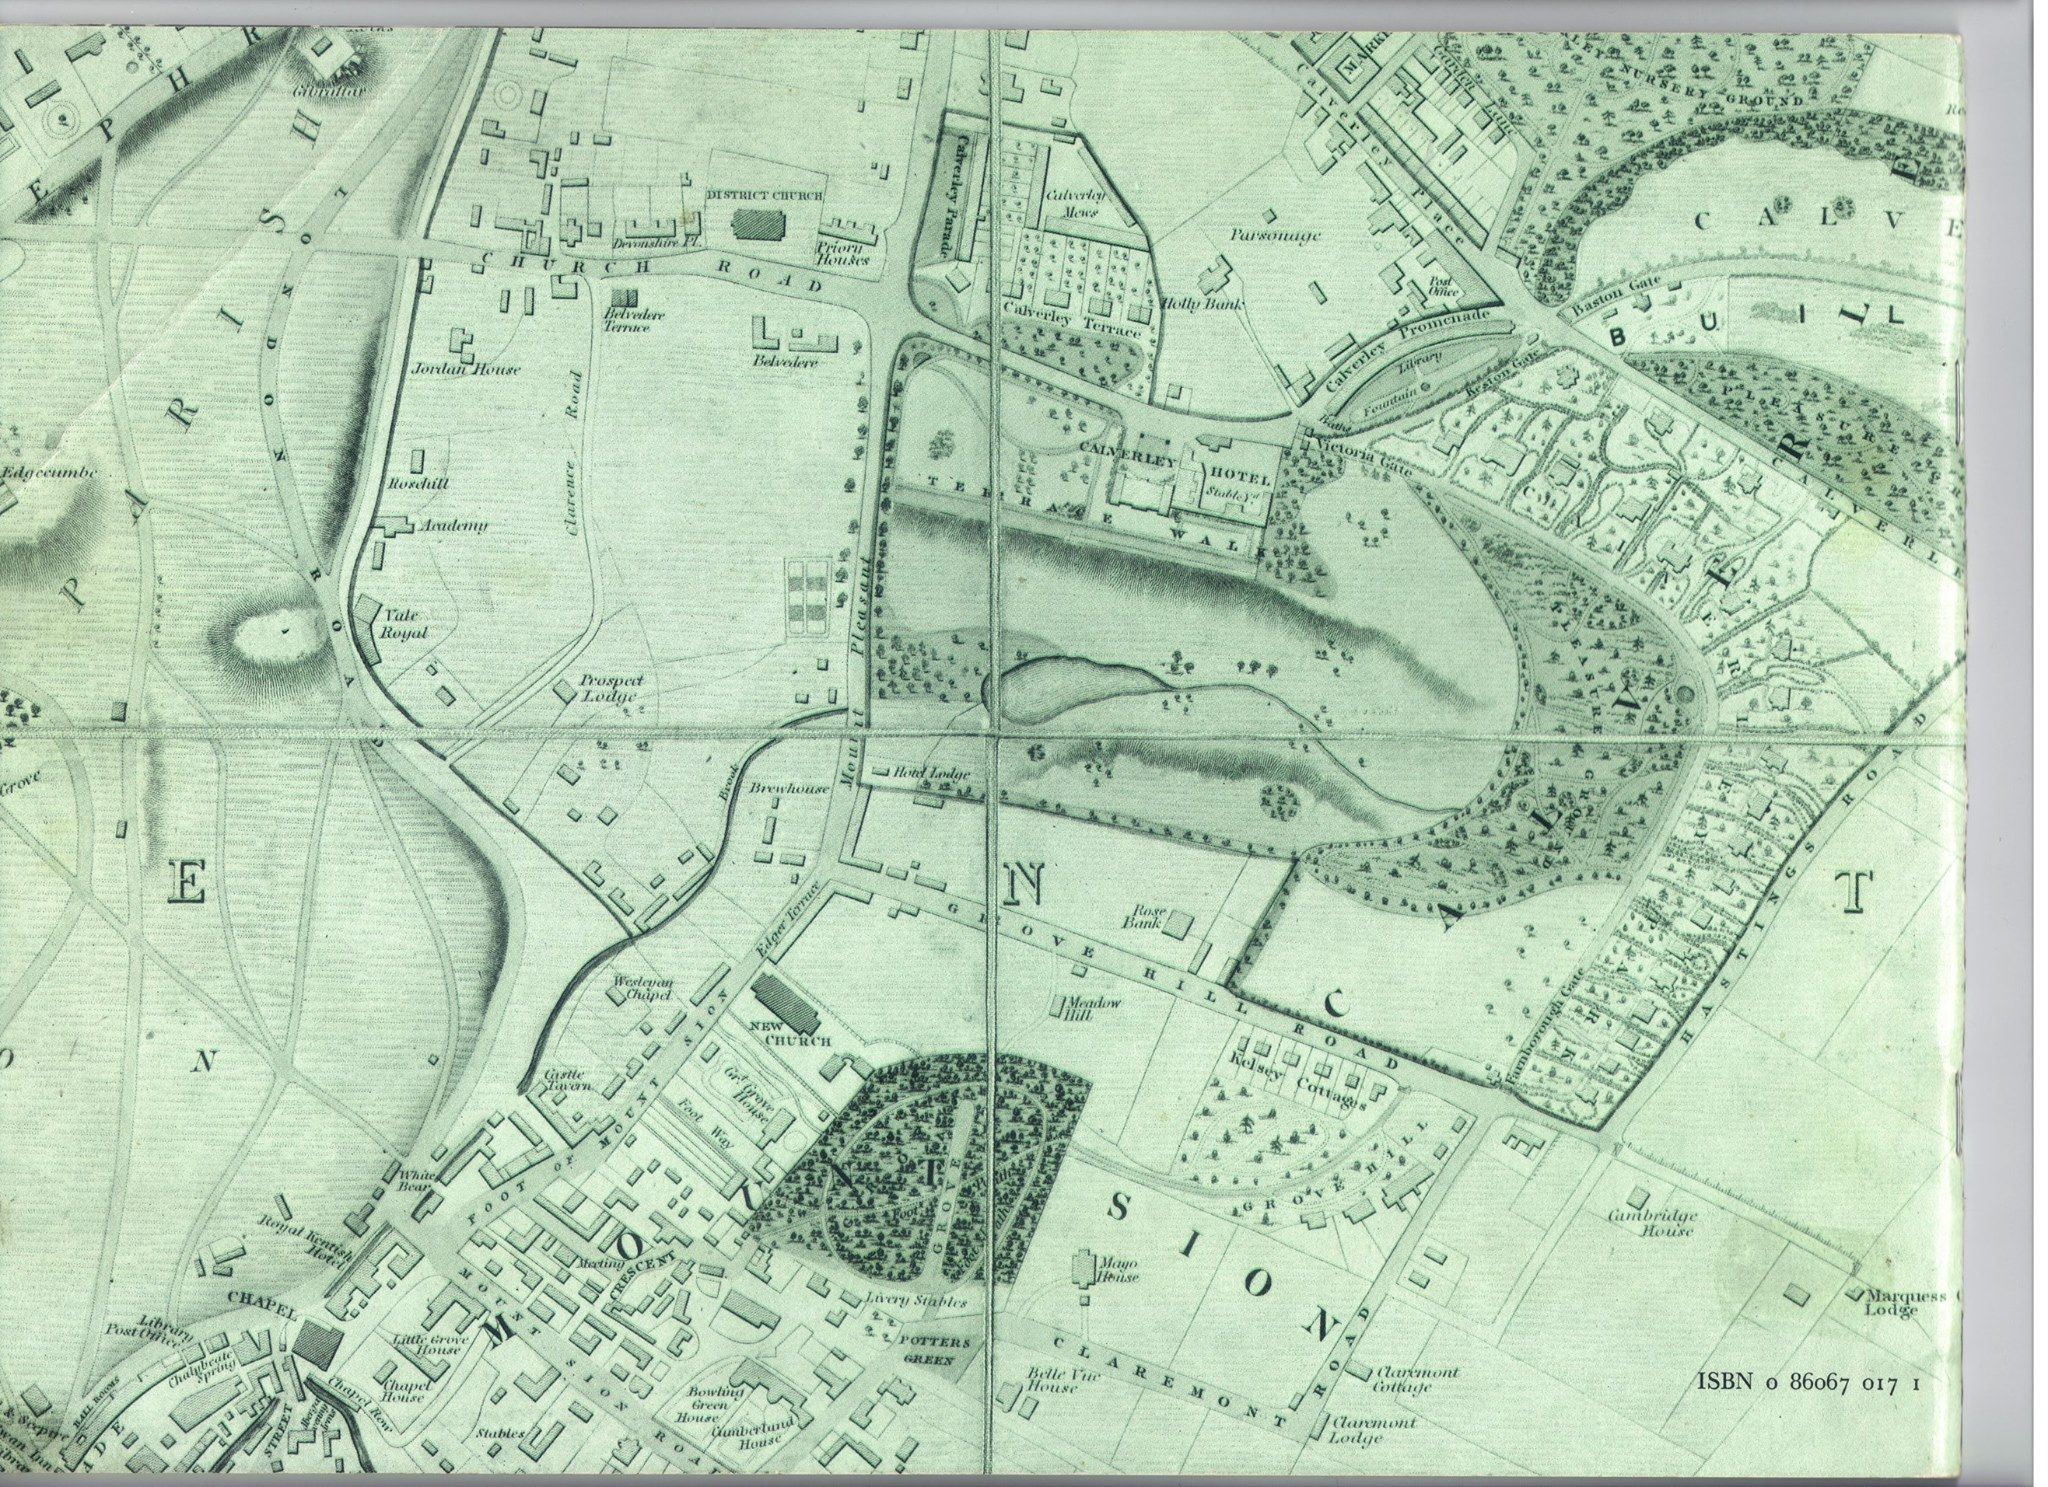 Tunbridge Wells map of 1838 shows several different road names